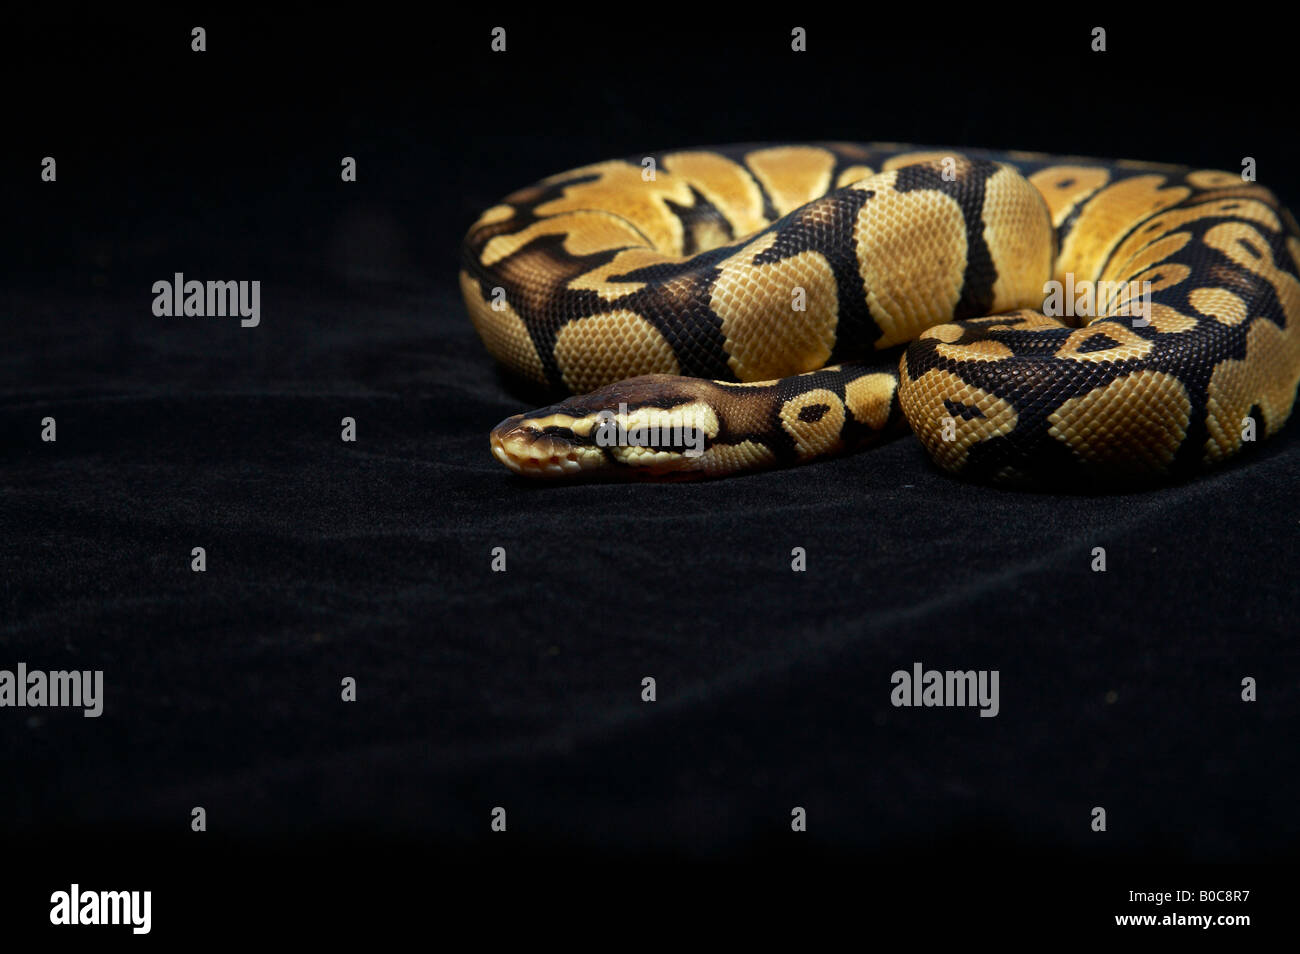 Royal Python Coiled On The Floor